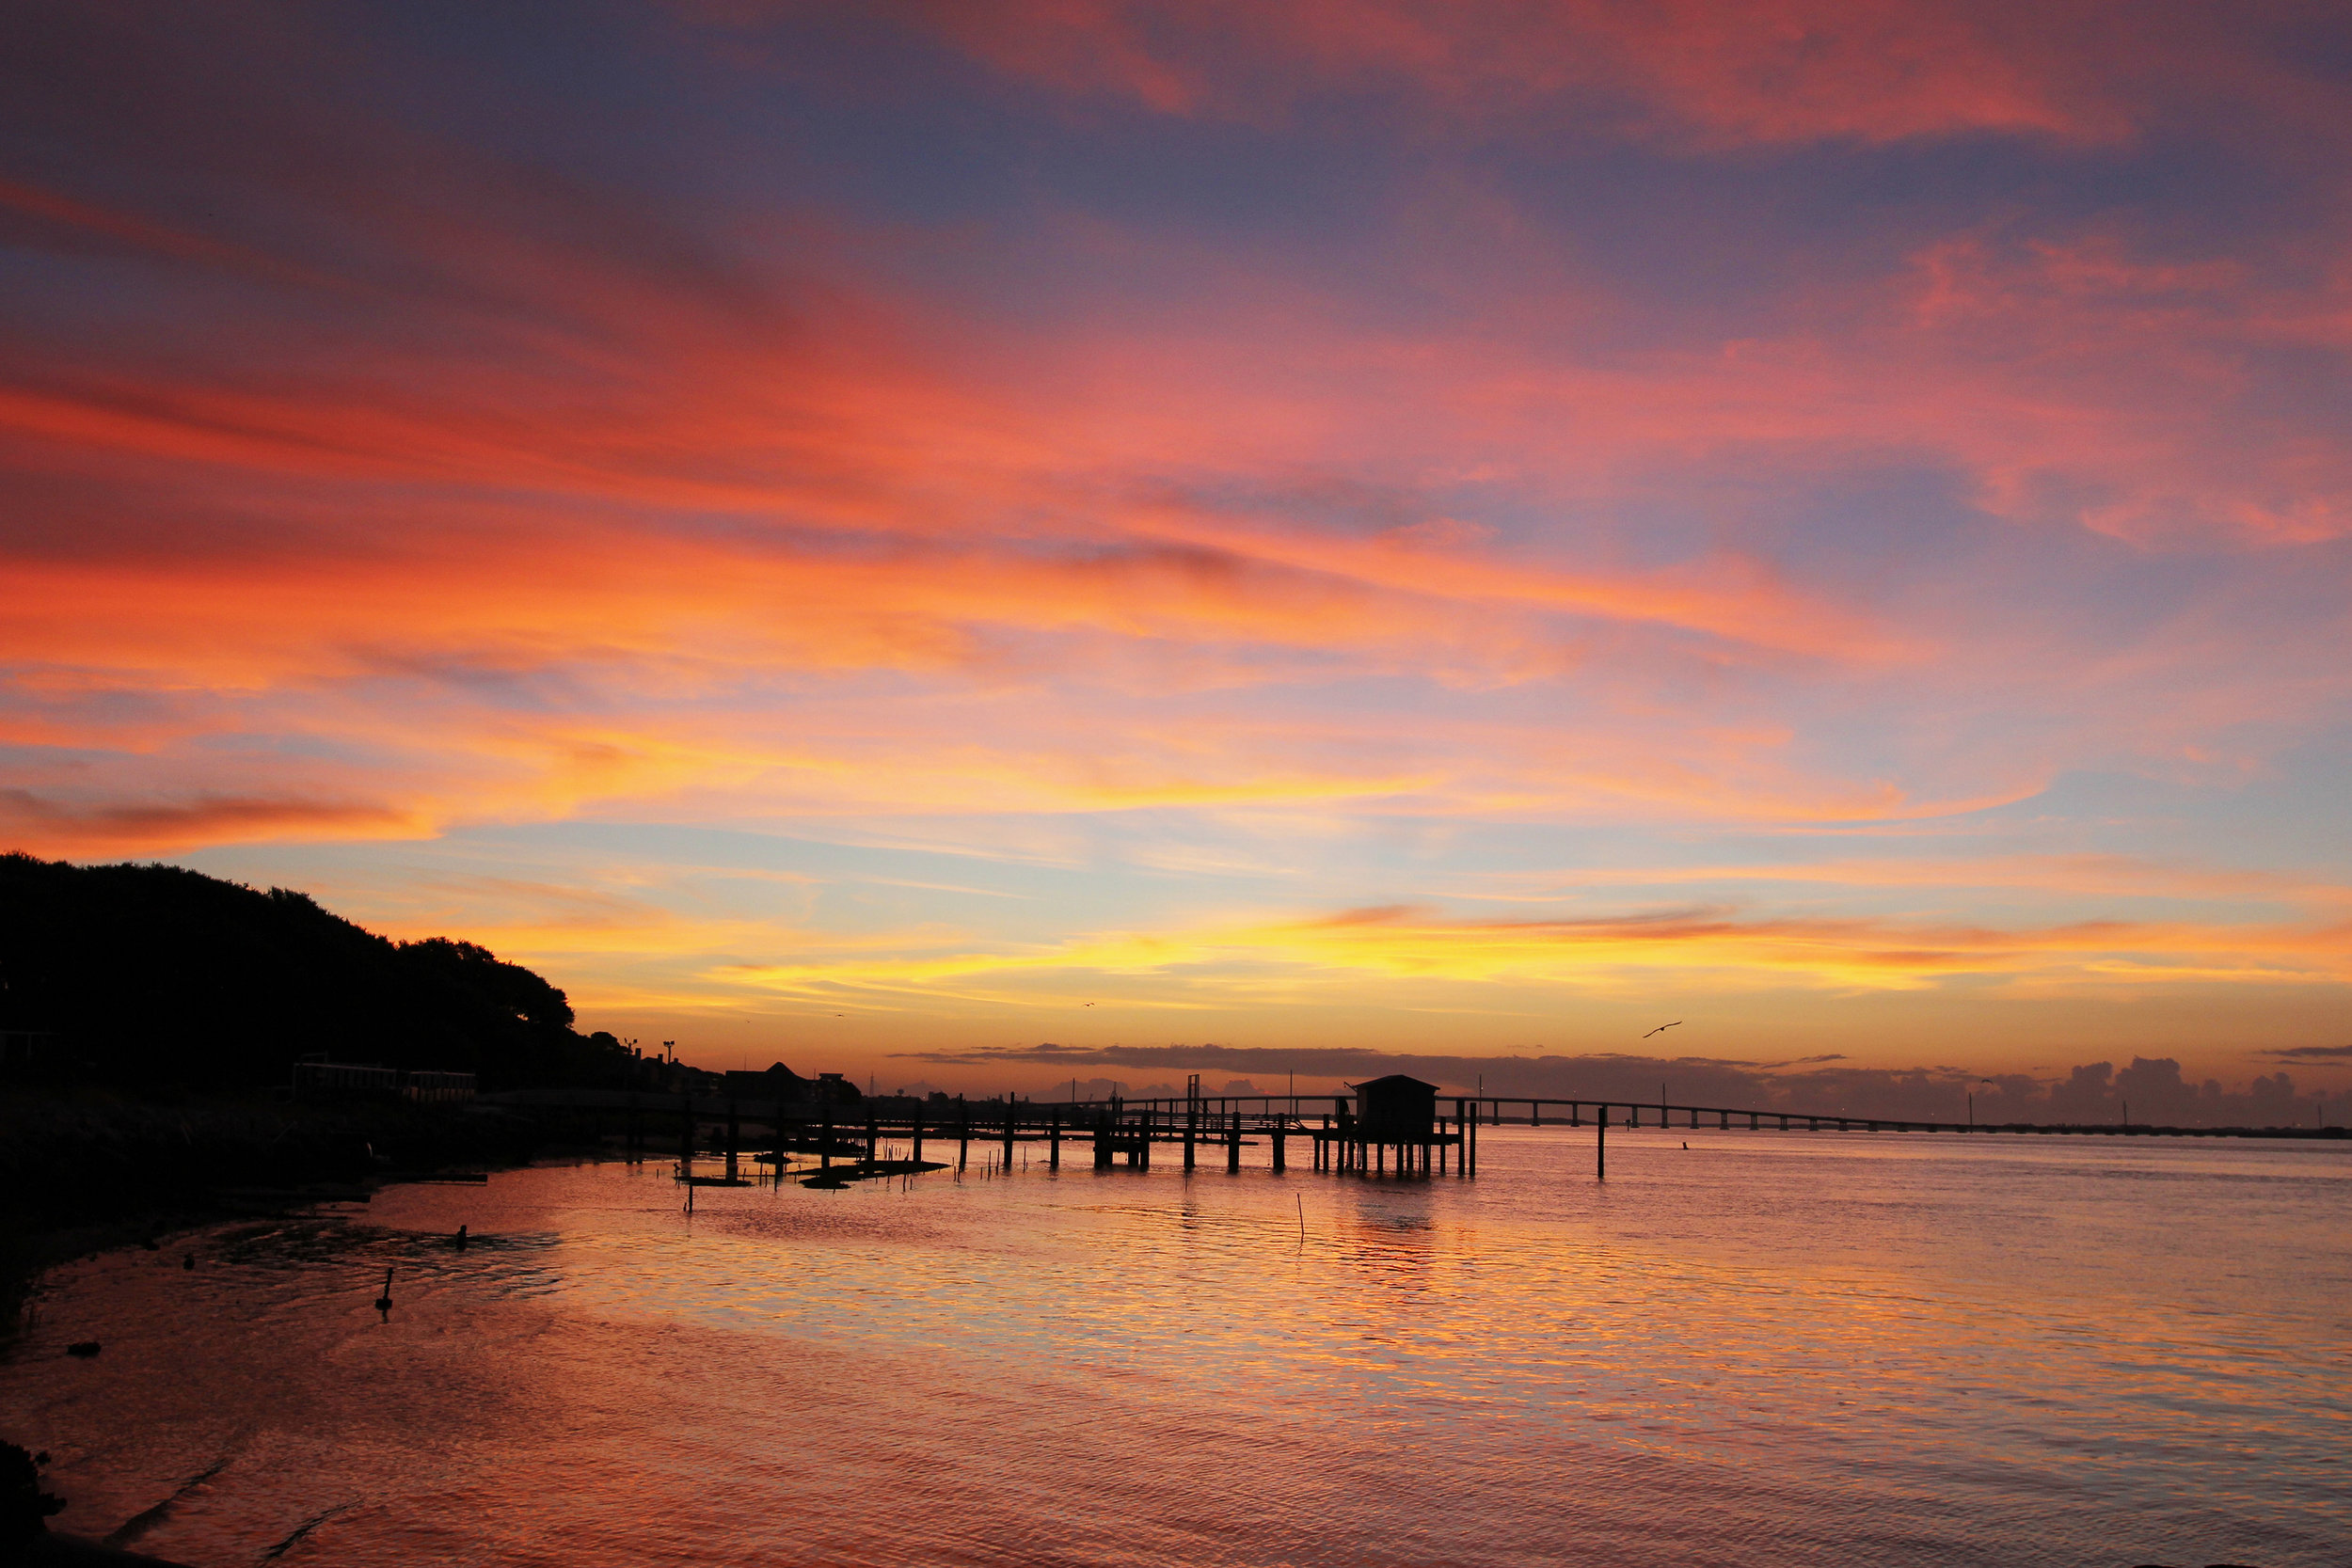 Bogue Sound reflects a cotton candy sky just before the sun rises in Morehead City, NC.